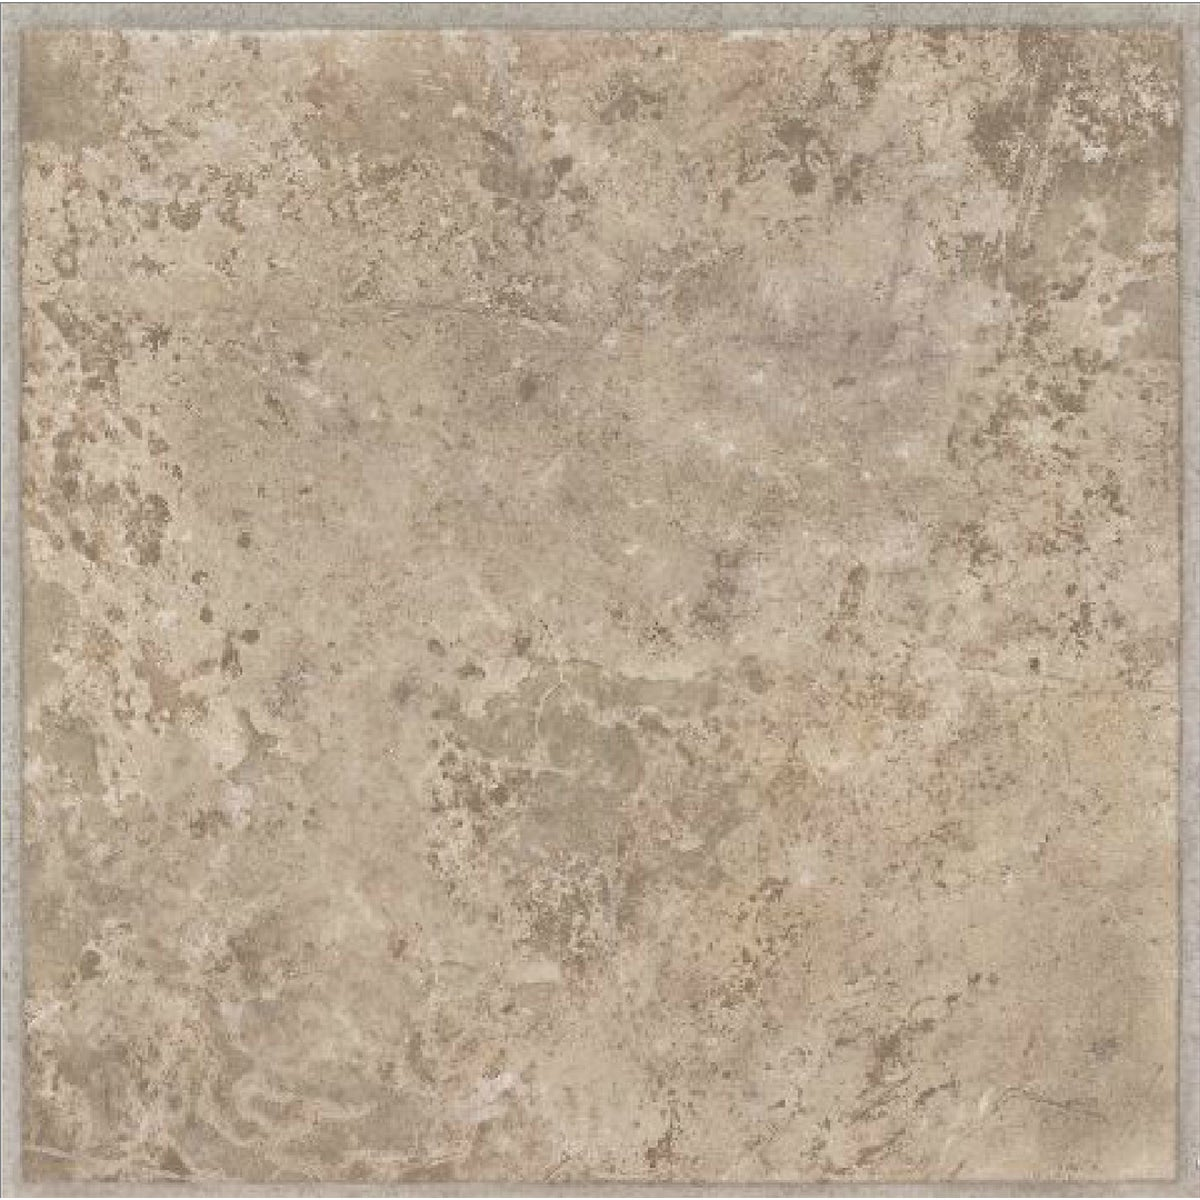 BEIGE STONE VINYL TILE - 25300 by Armstrong World Ind